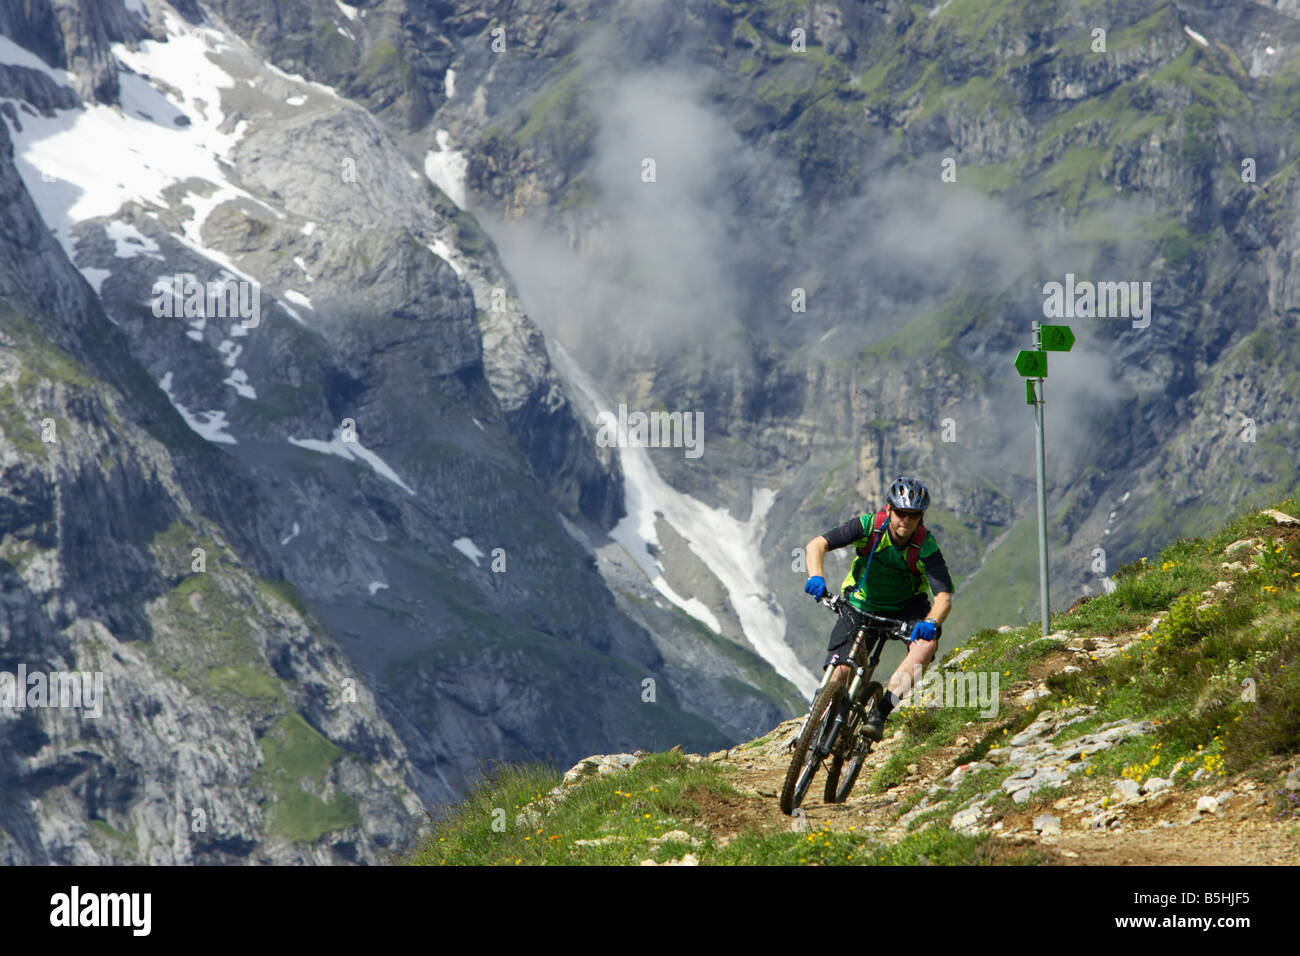 Bicyclist in the mountains - Stock Image